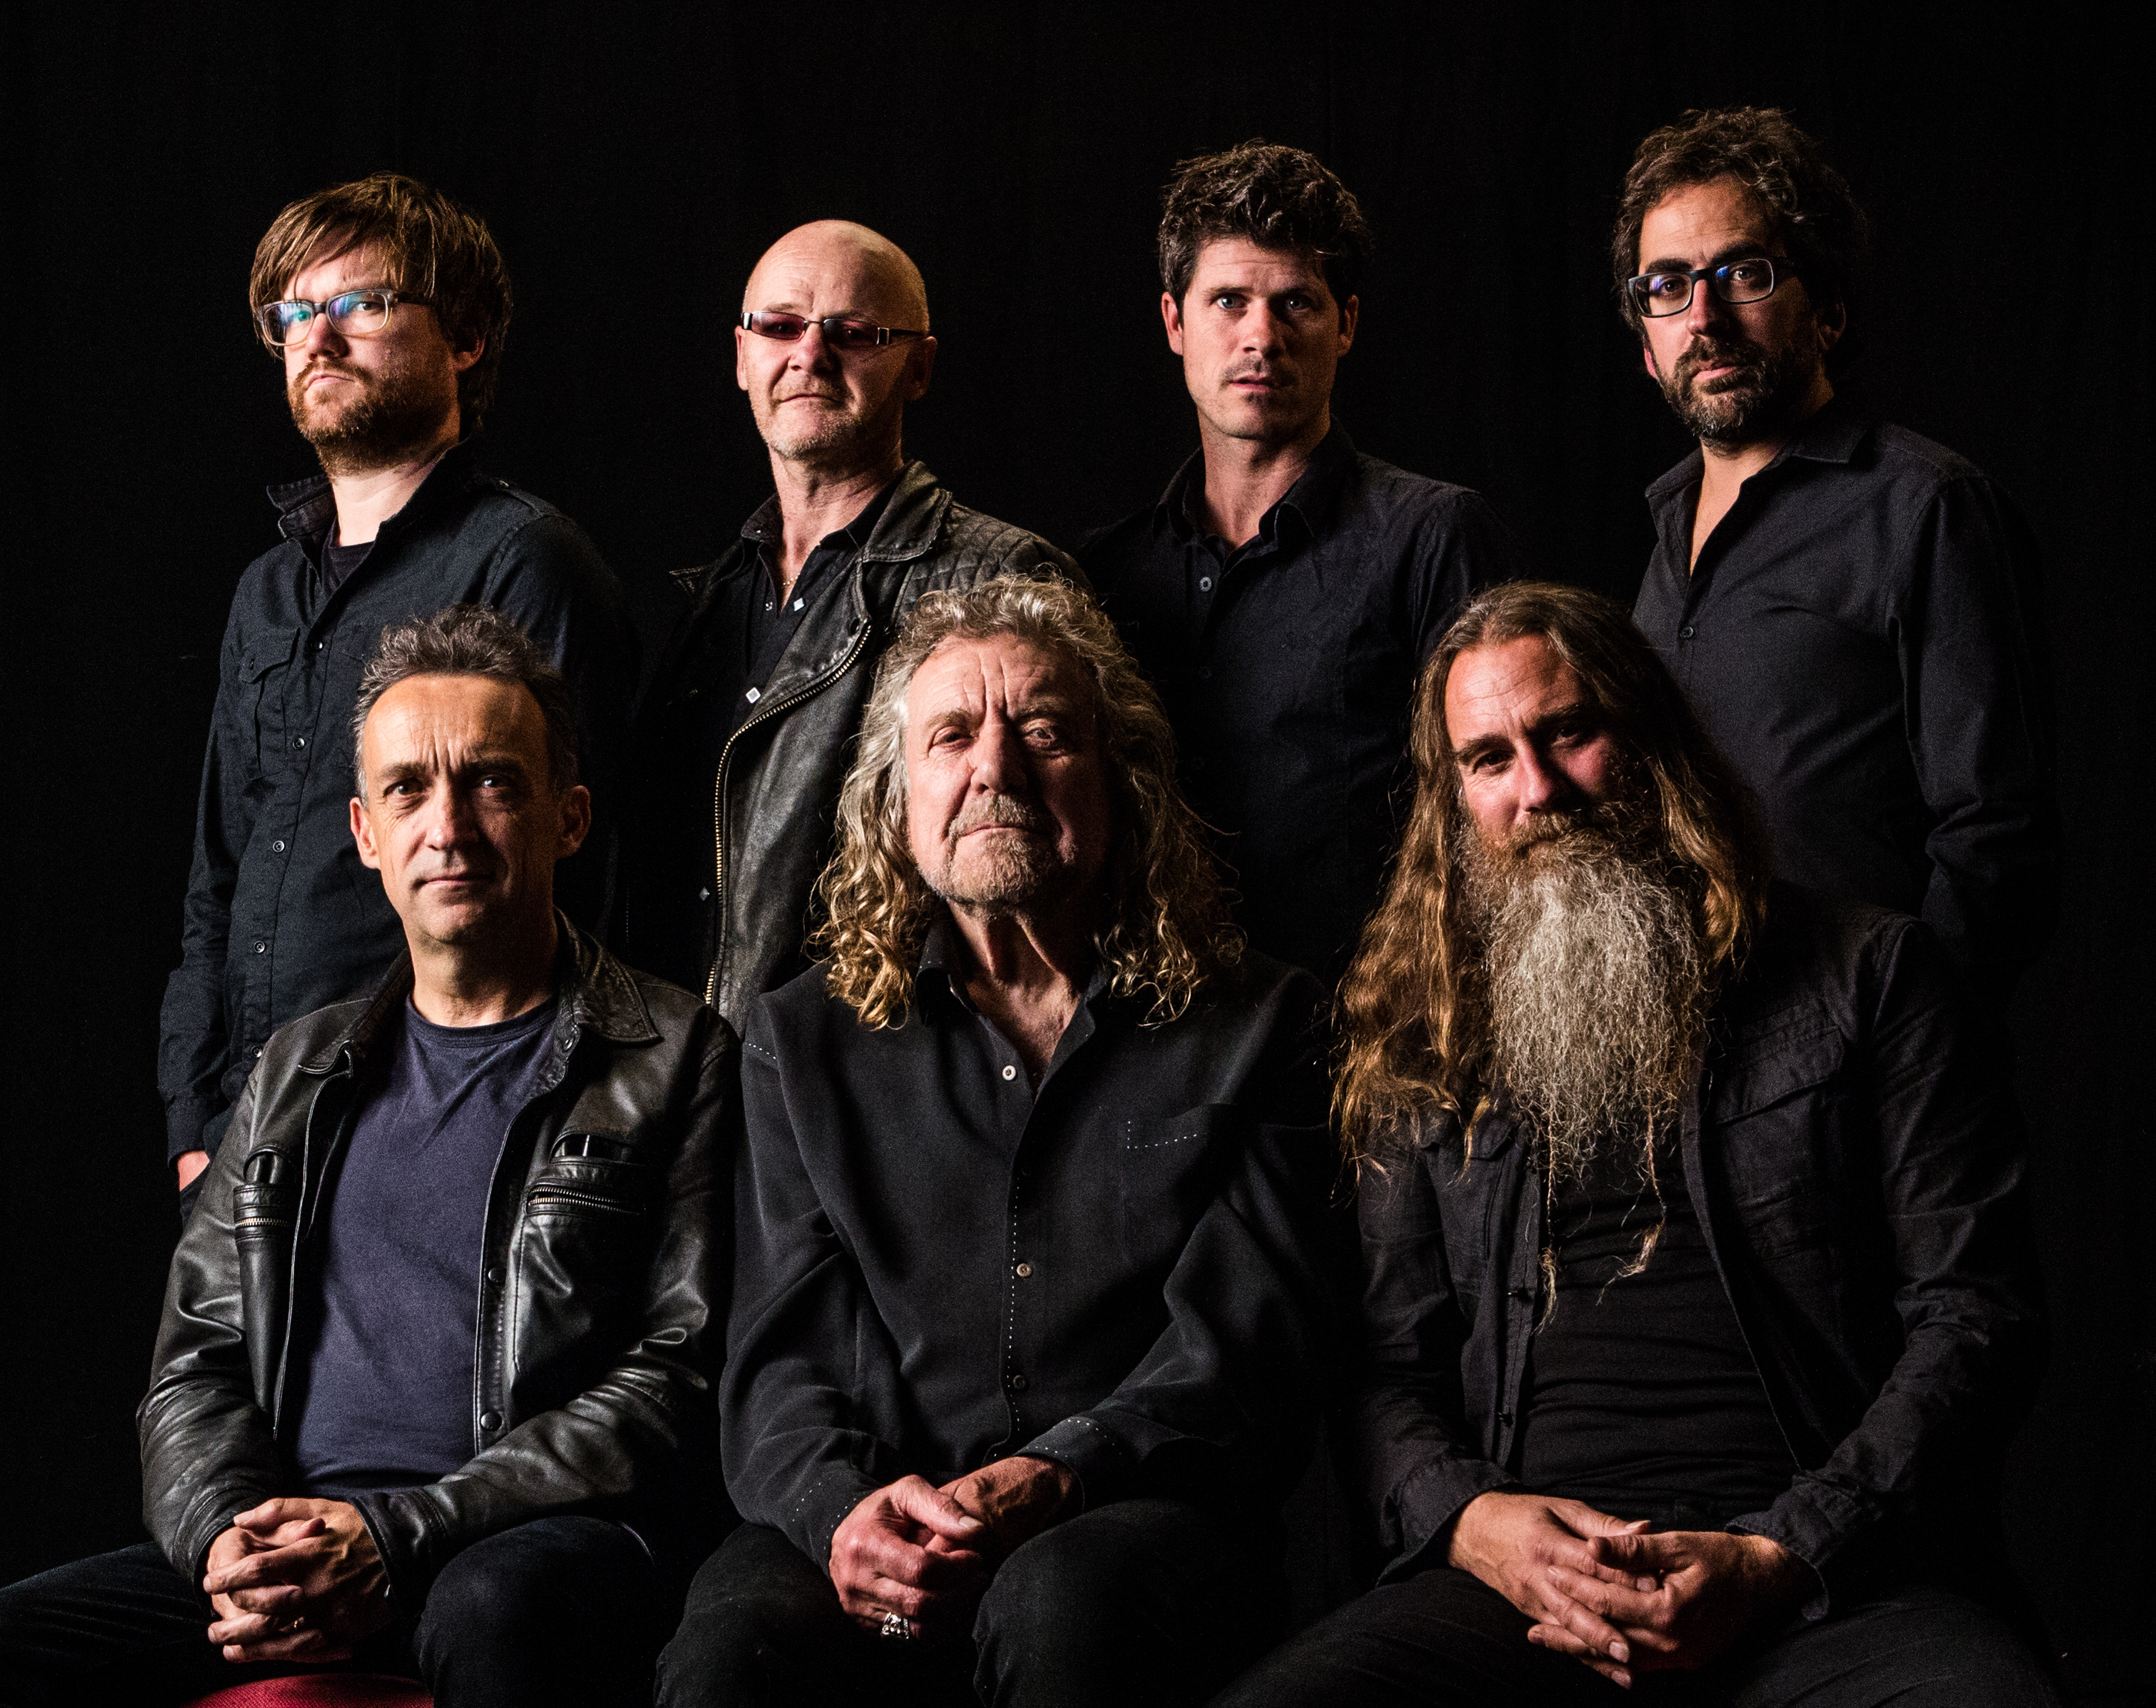 Robert Plant and Van Morrison added to BluesFest line up